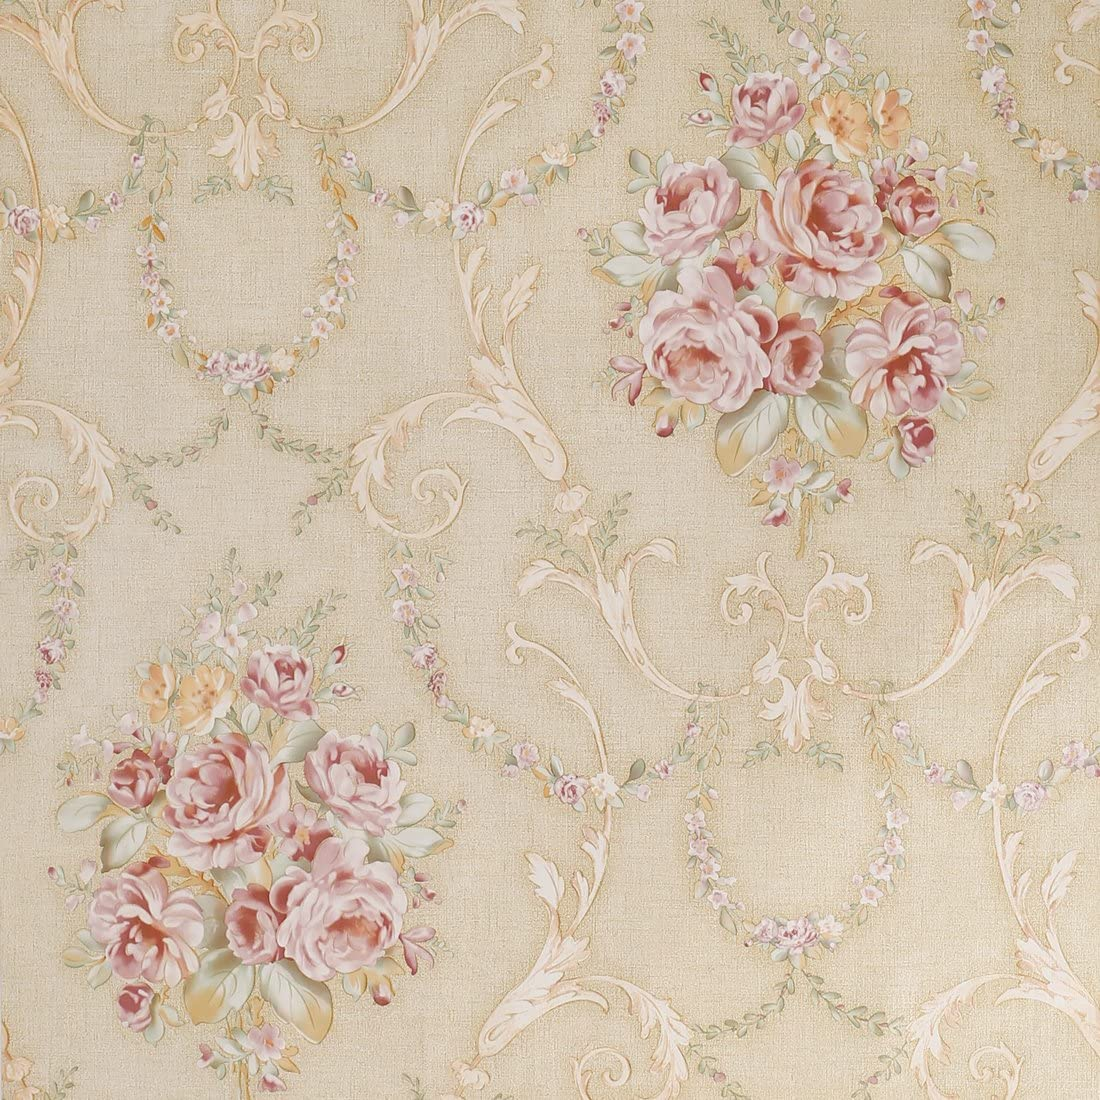 Amazon Com Sicohome Wallpaper 11 Yards Beige Floral Peel Stick